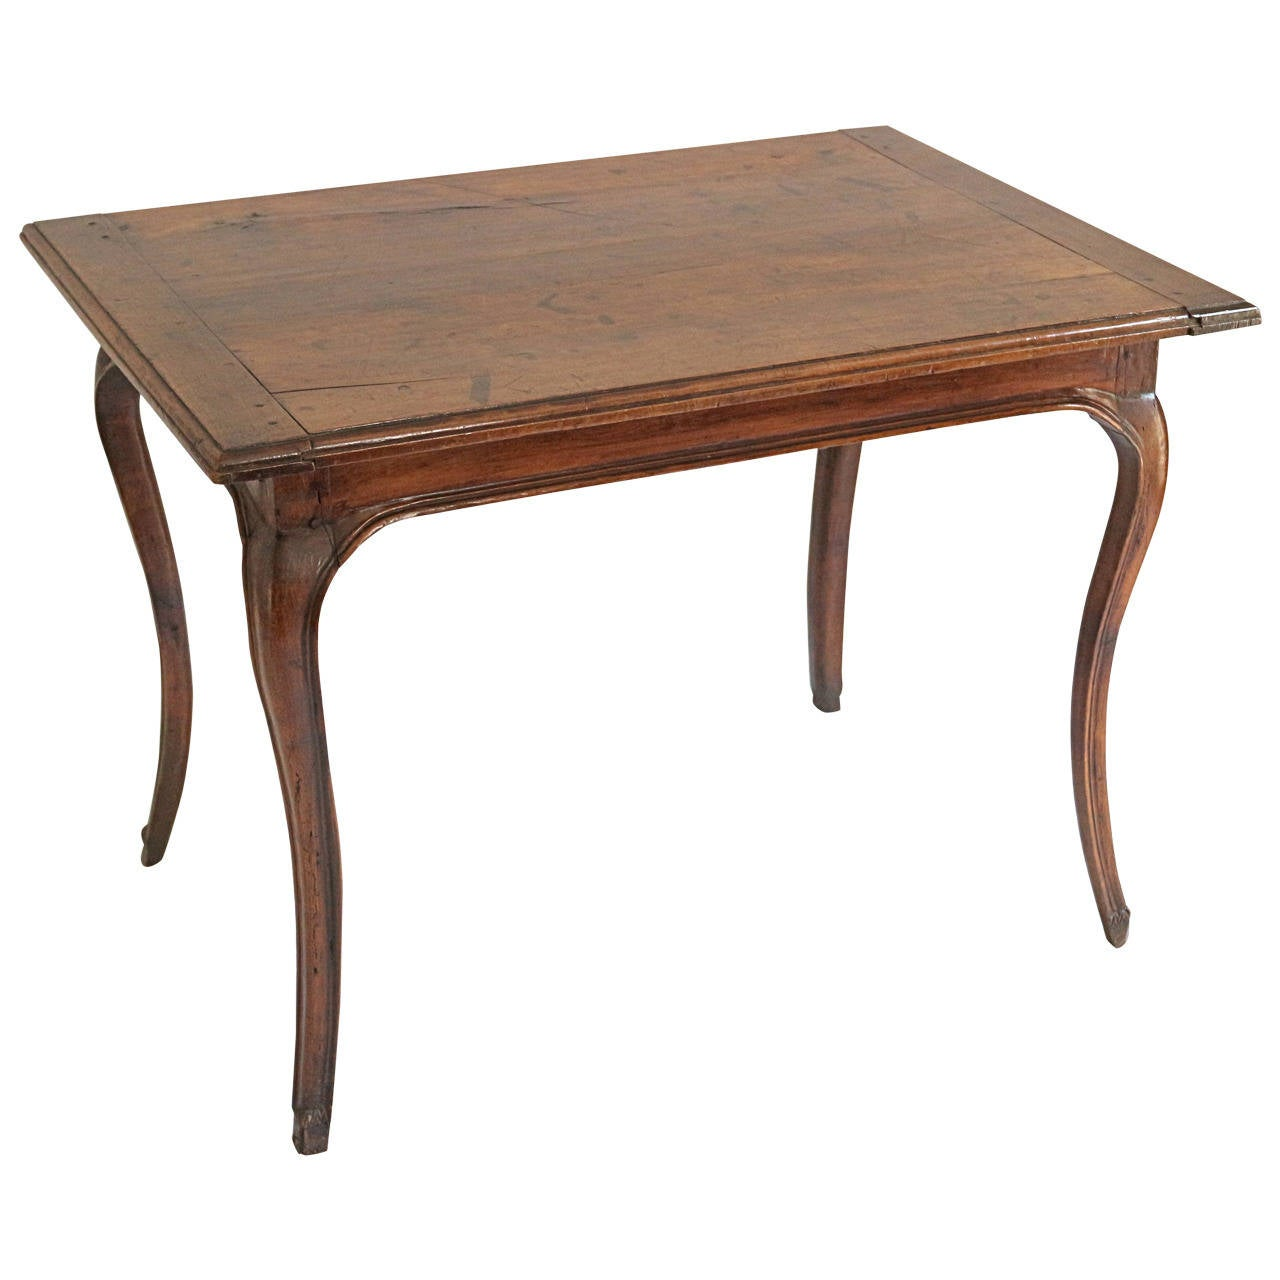 French 18th century table in fruitwood at 1stdibs for Table th width ignored